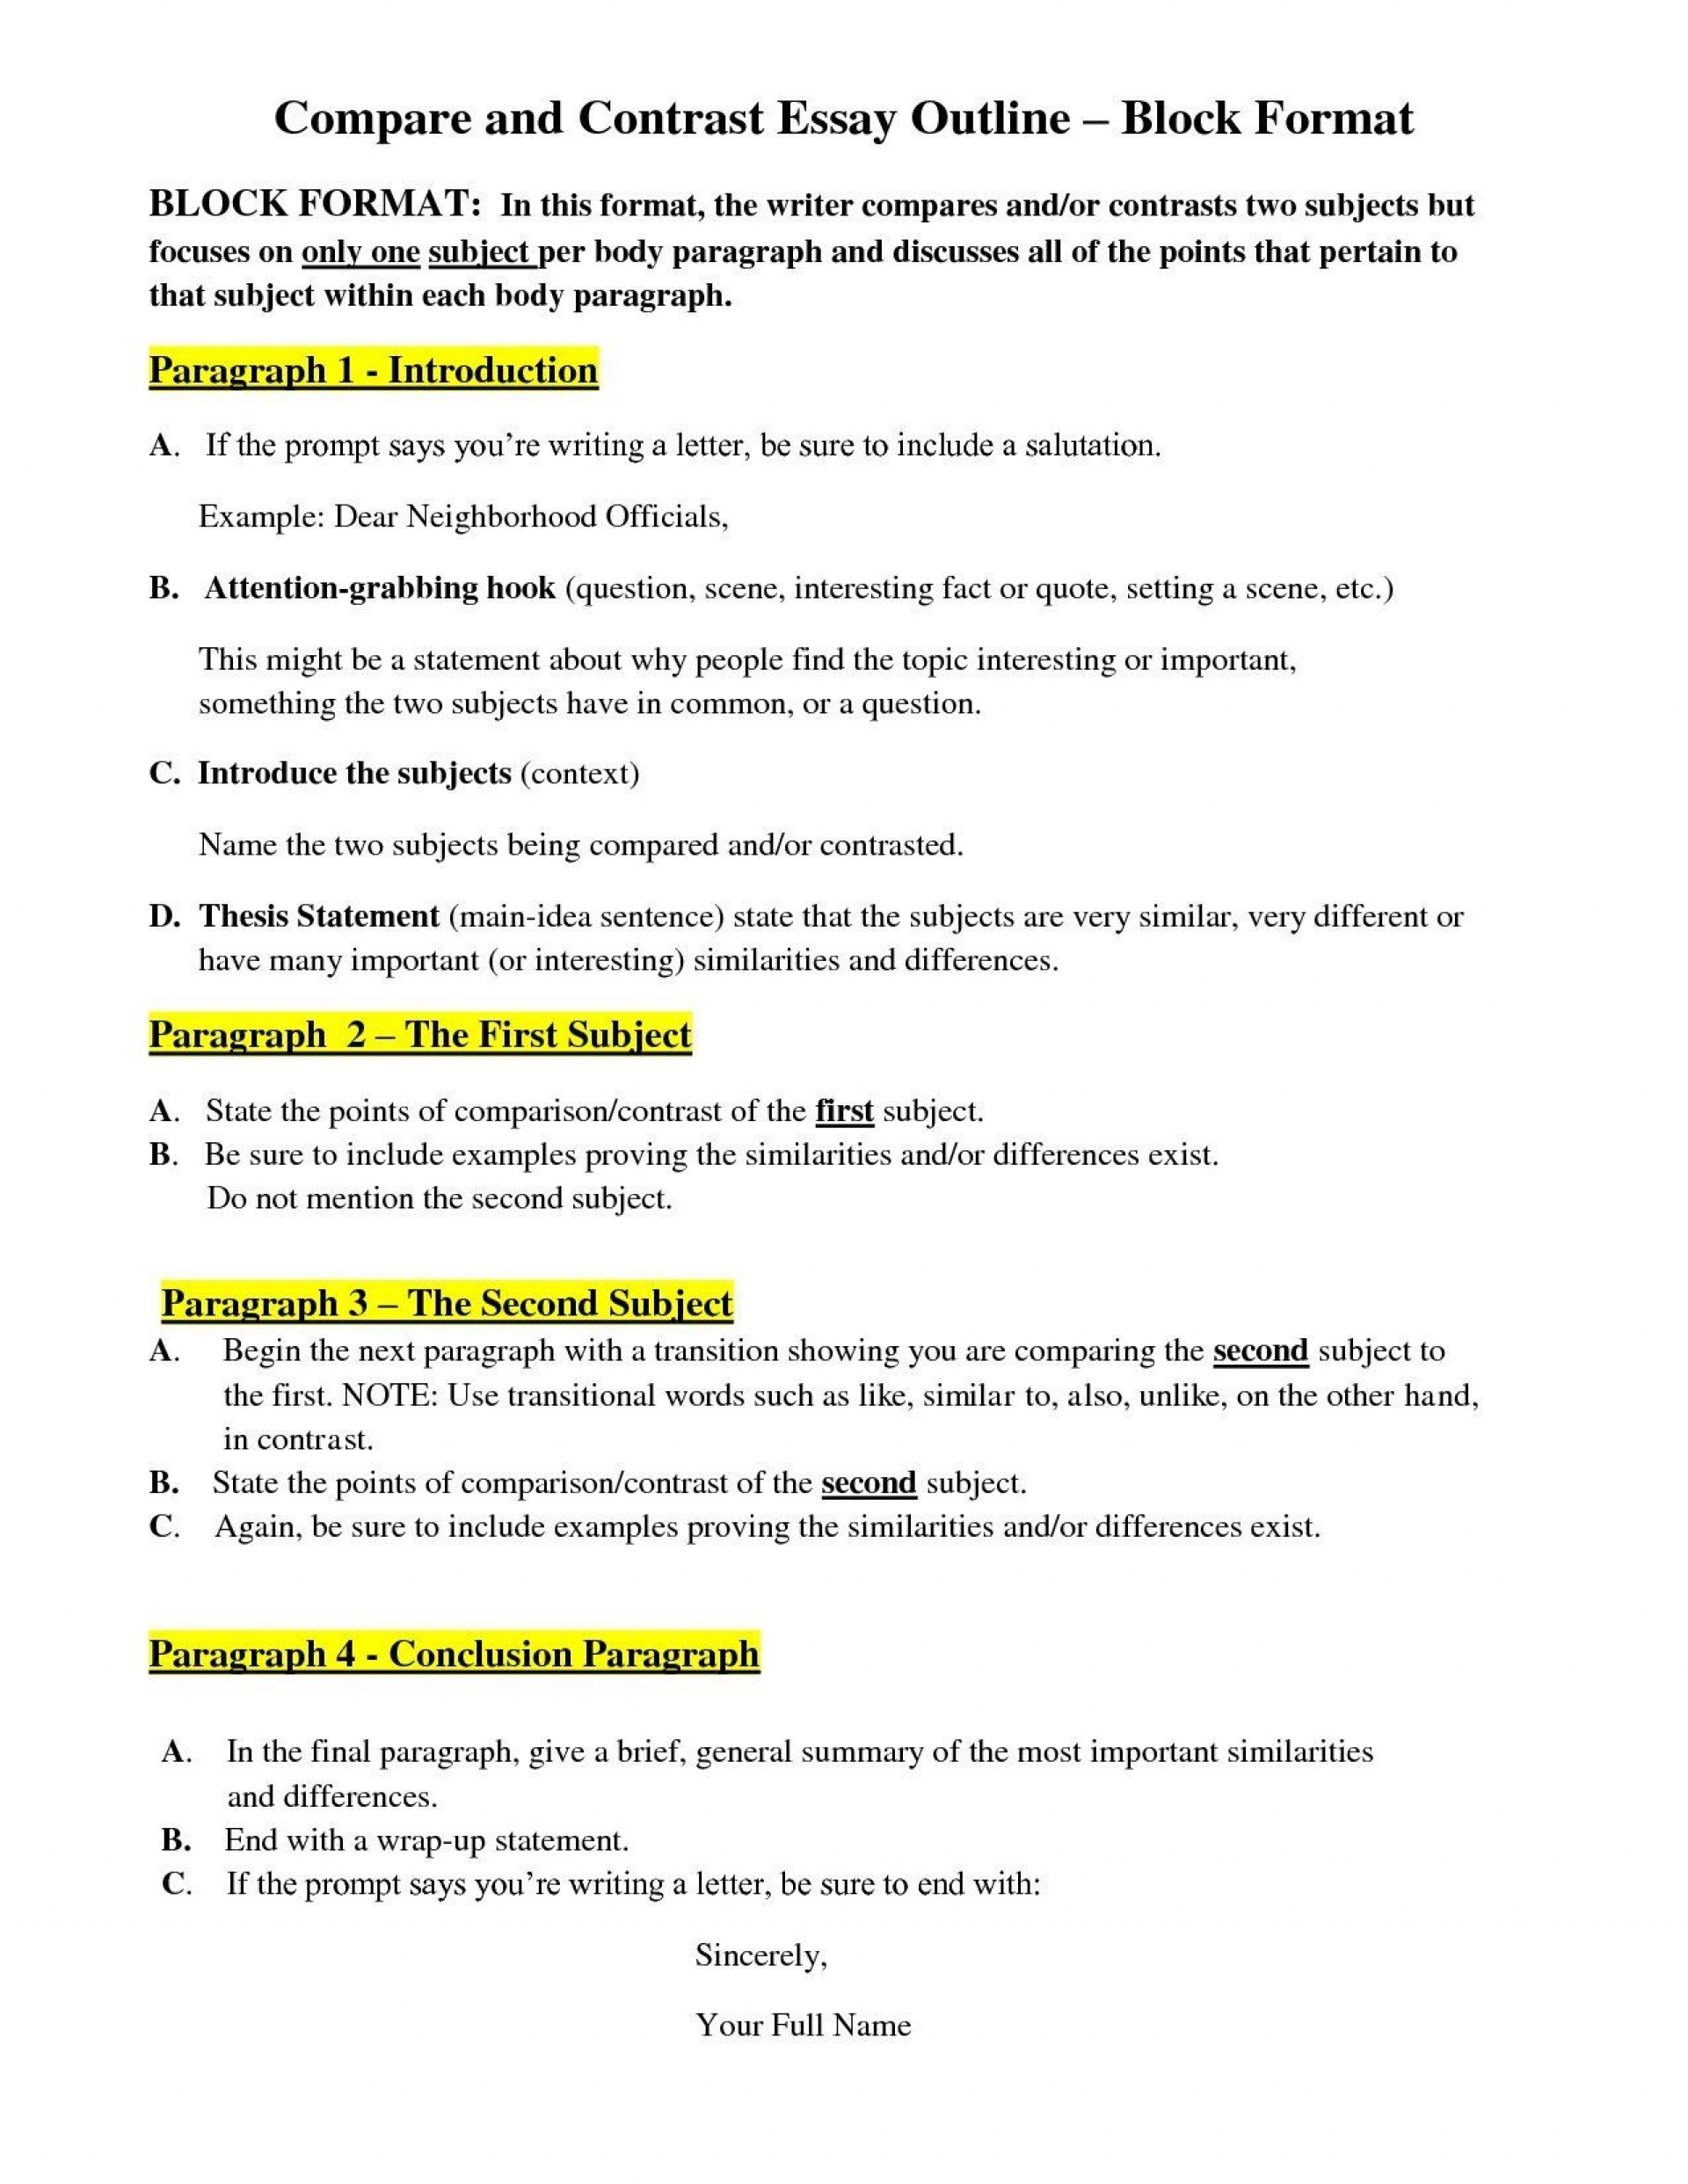 007 Compare And Contrast Essay Frightening Prompts 5th Grade Rubric College Ideas 12th 1920